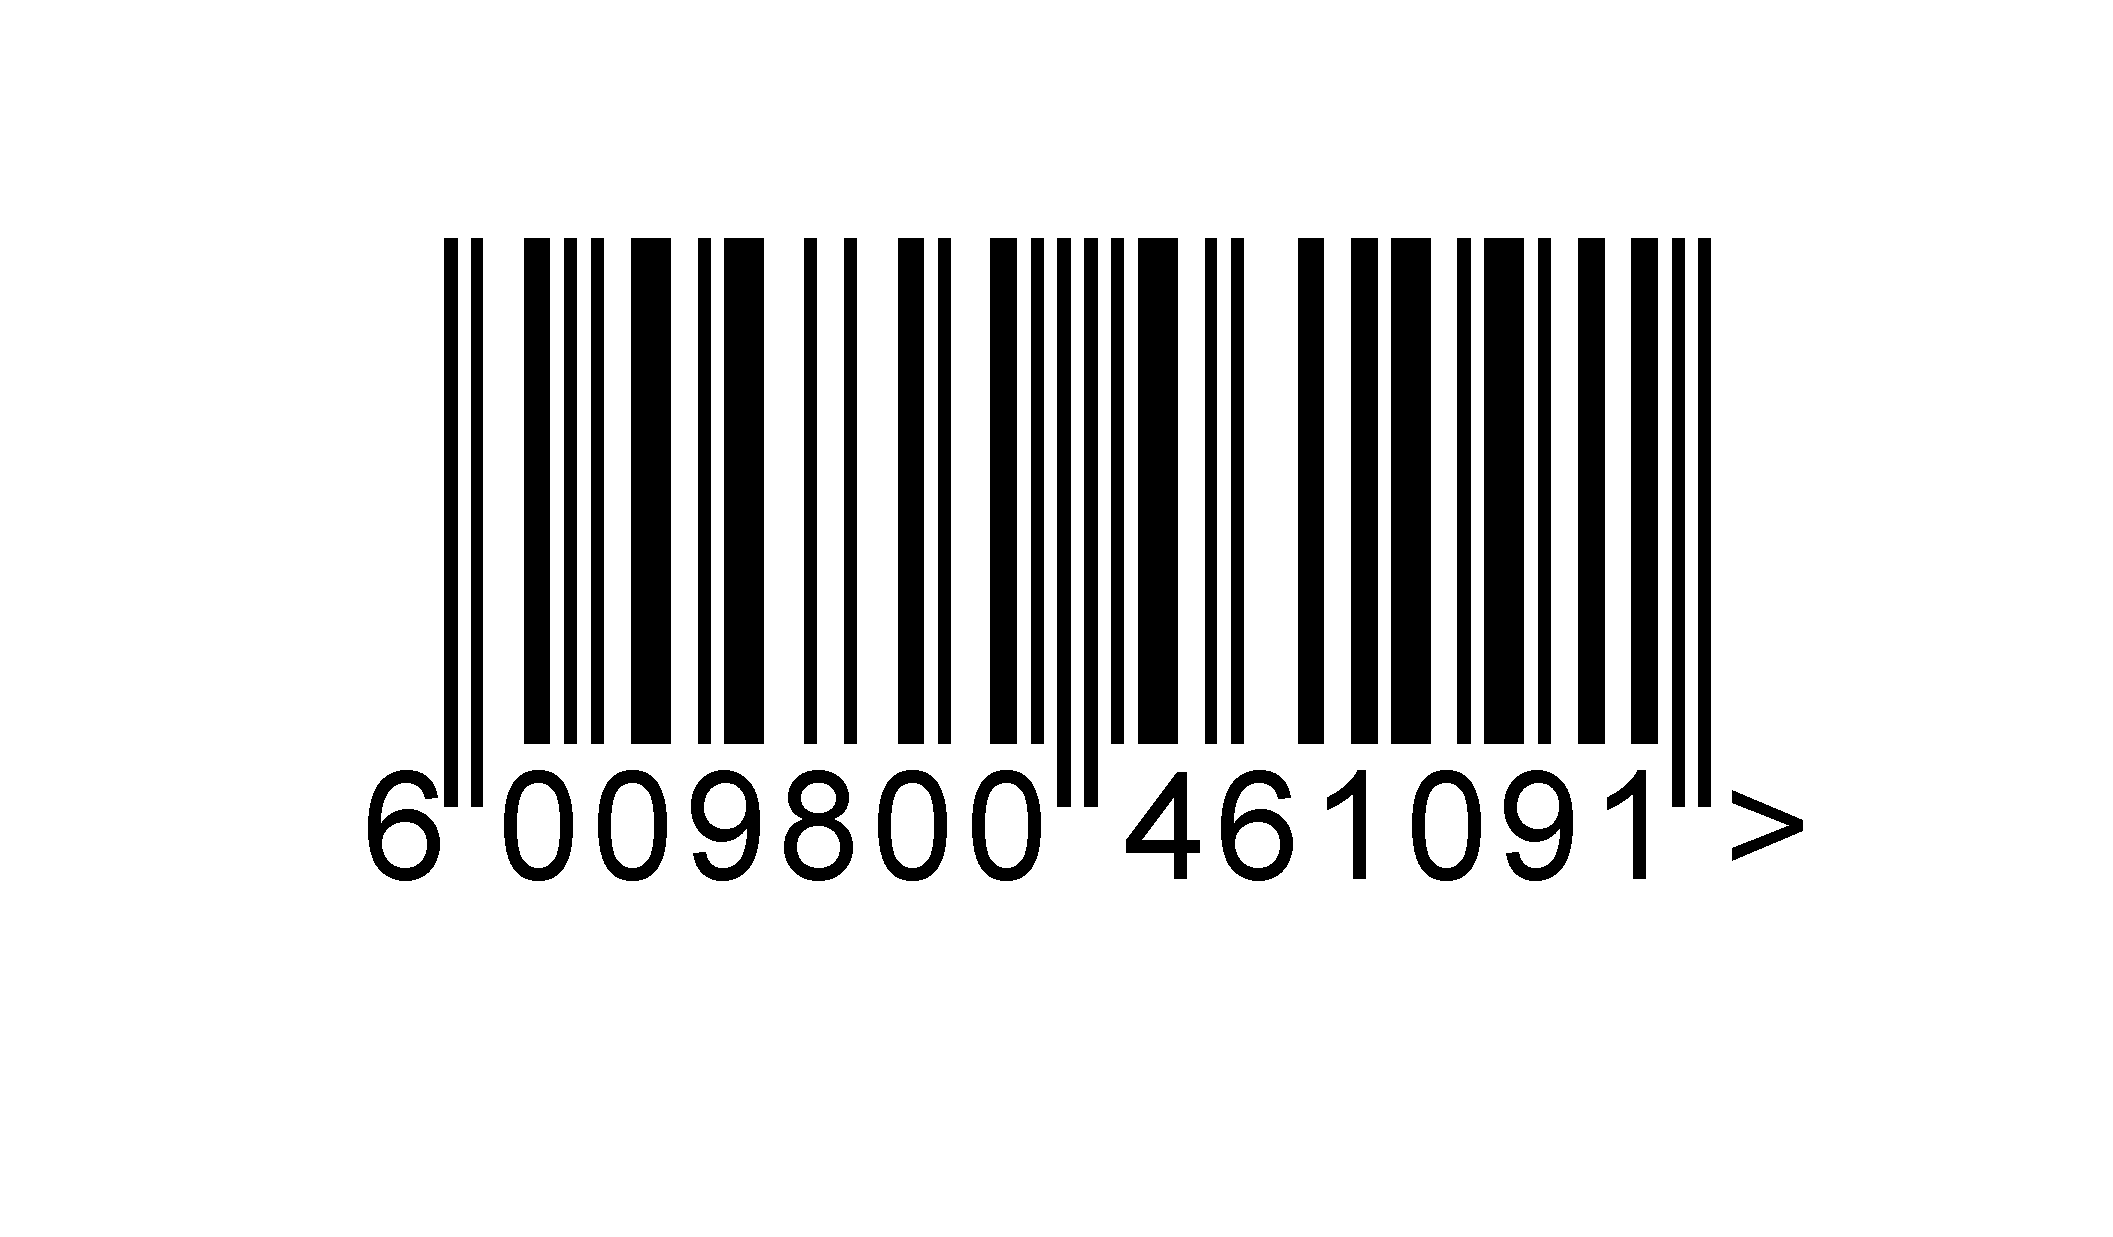 13 design symbol cover code magazine bar images barcode